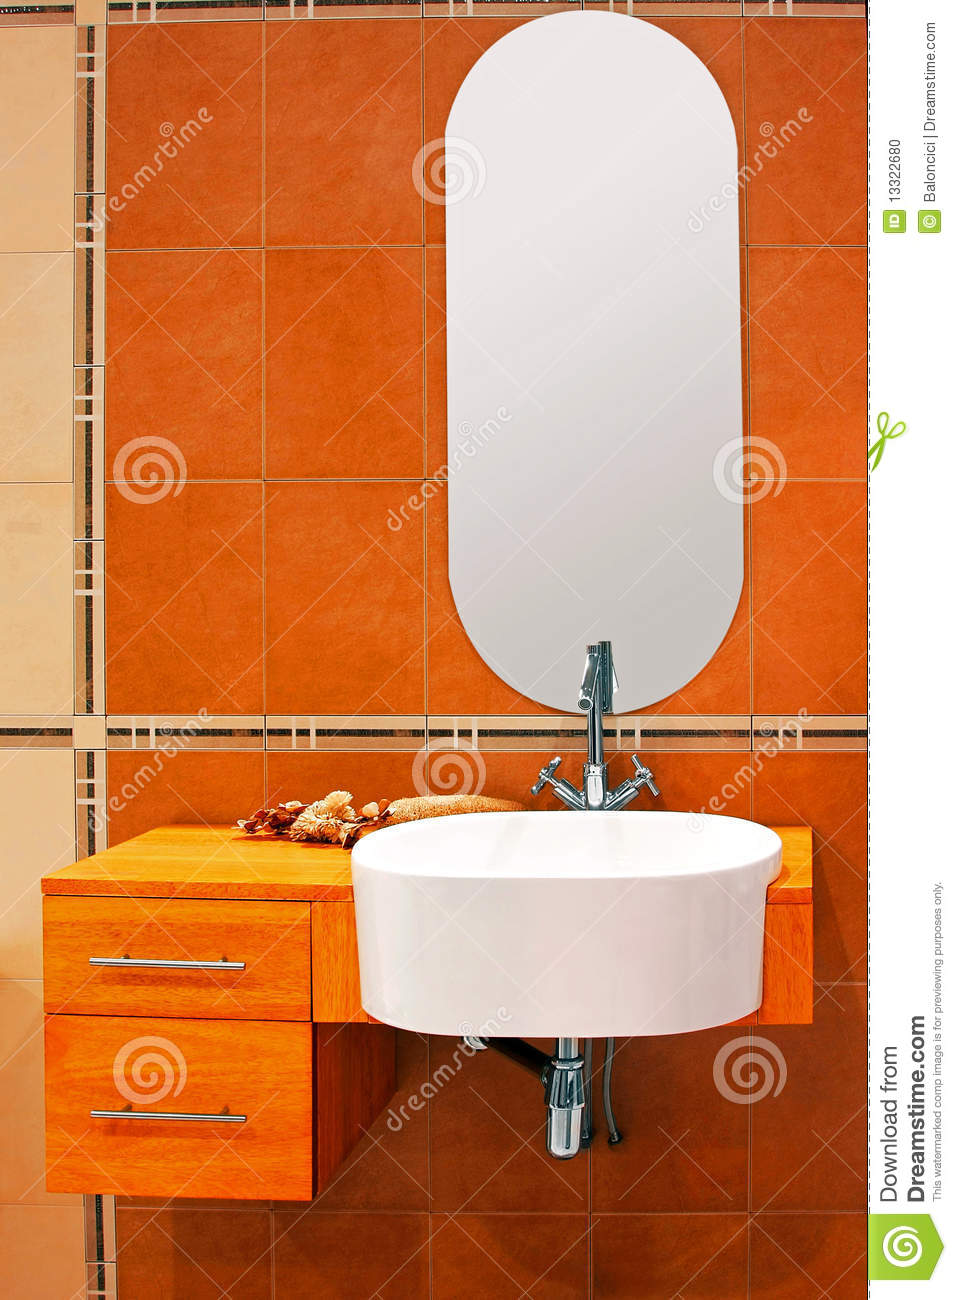 commode design orange id e inspirante pour. Black Bedroom Furniture Sets. Home Design Ideas